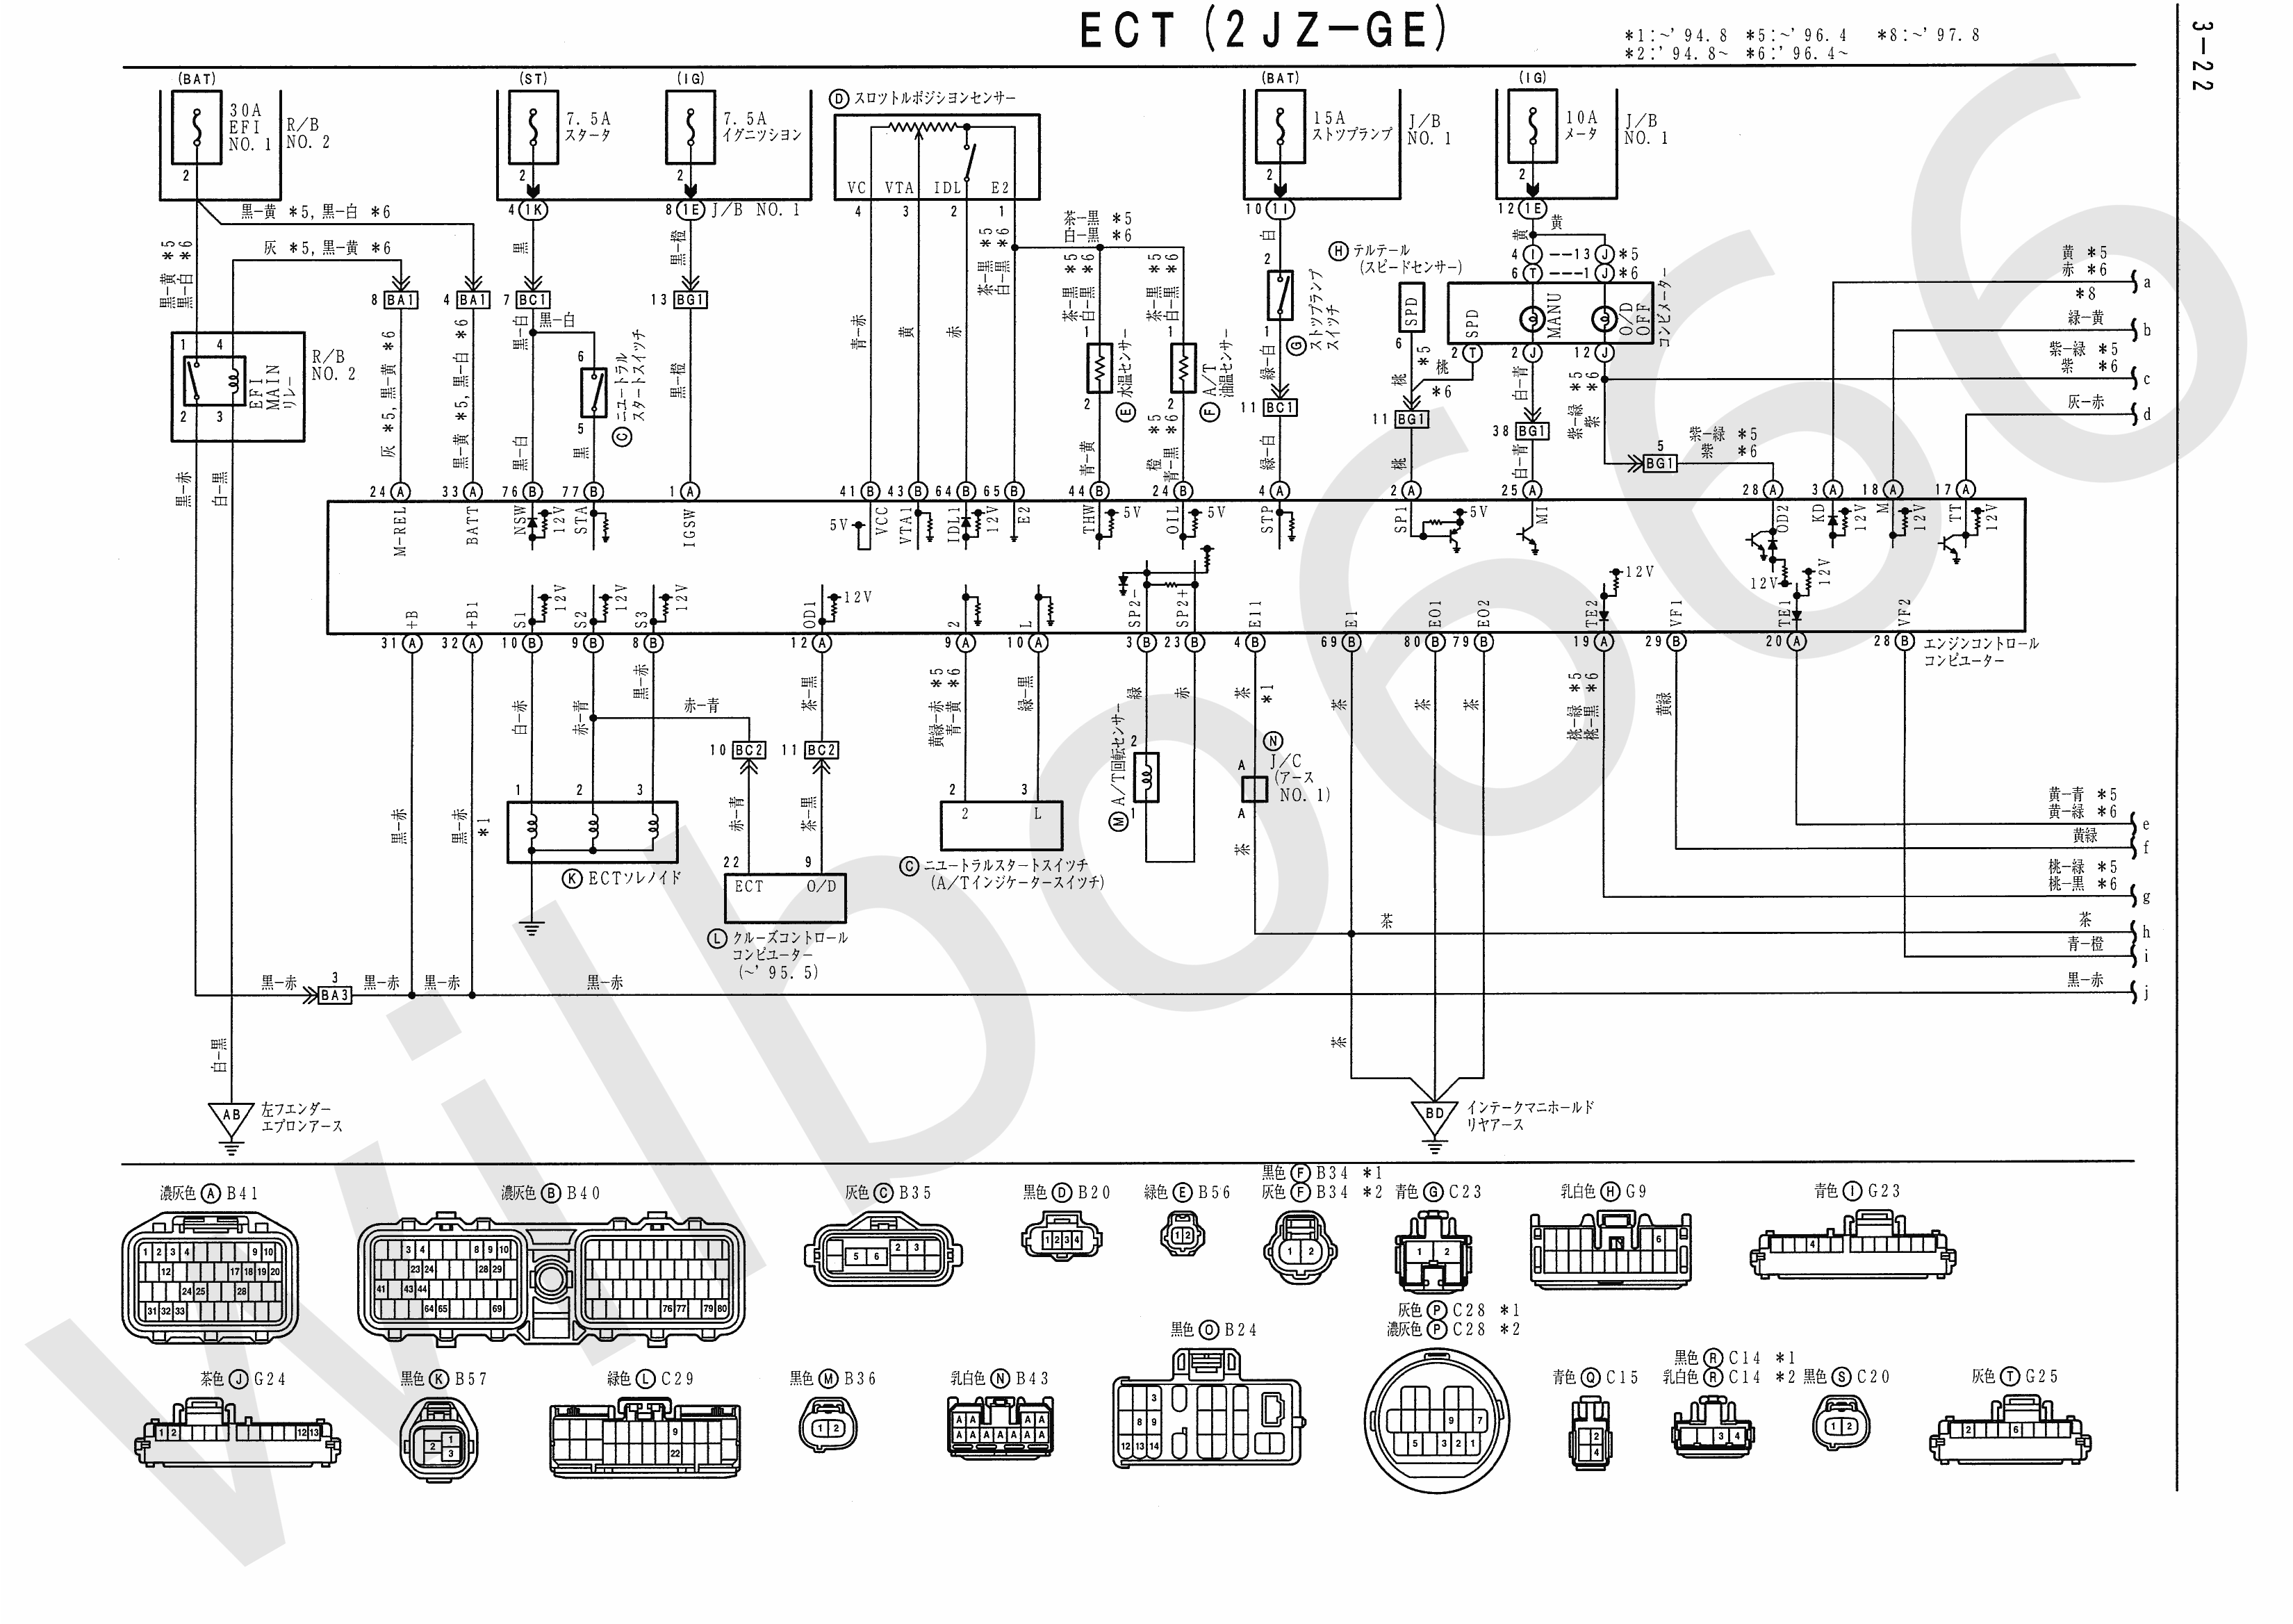 94 Supra Fuse Box Diagram Books Of Wiring 1981 280zx Ecu Wilbo666 2jz Ge Jza80 Engine Rh Pbworks Com